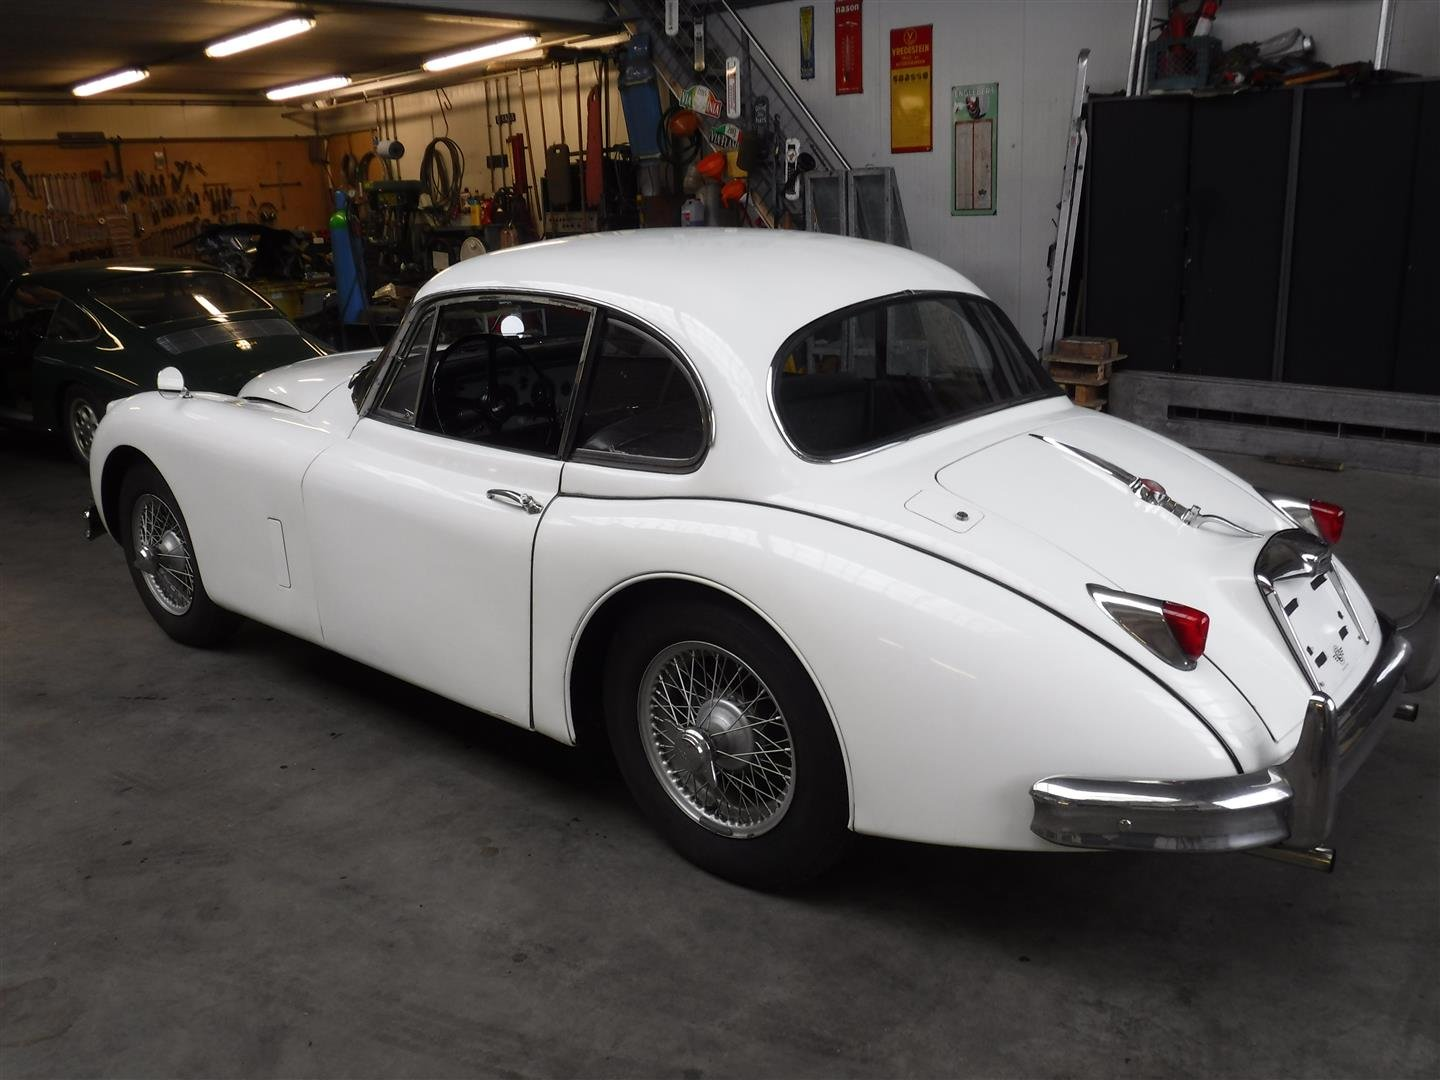 1958 Jaguar XK 150 coupe '58 For Sale (picture 3 of 6)